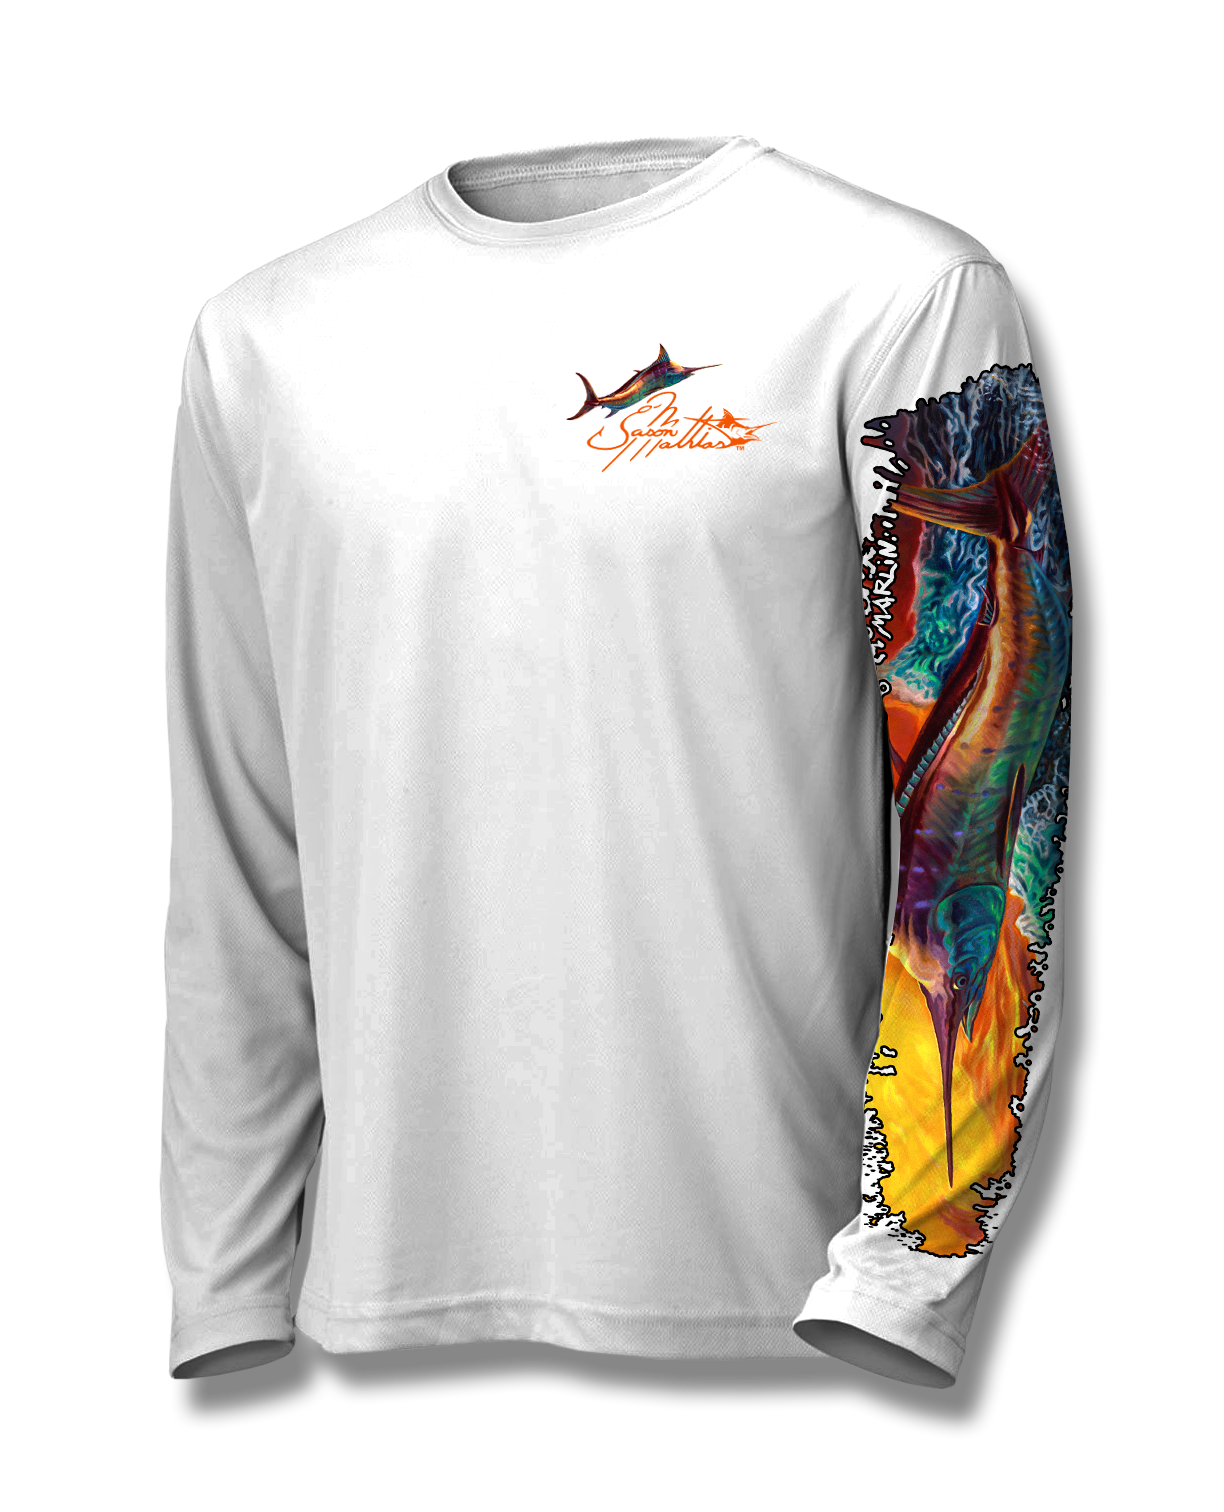 marlin-jumping-shirt-front-jason-mathias.png